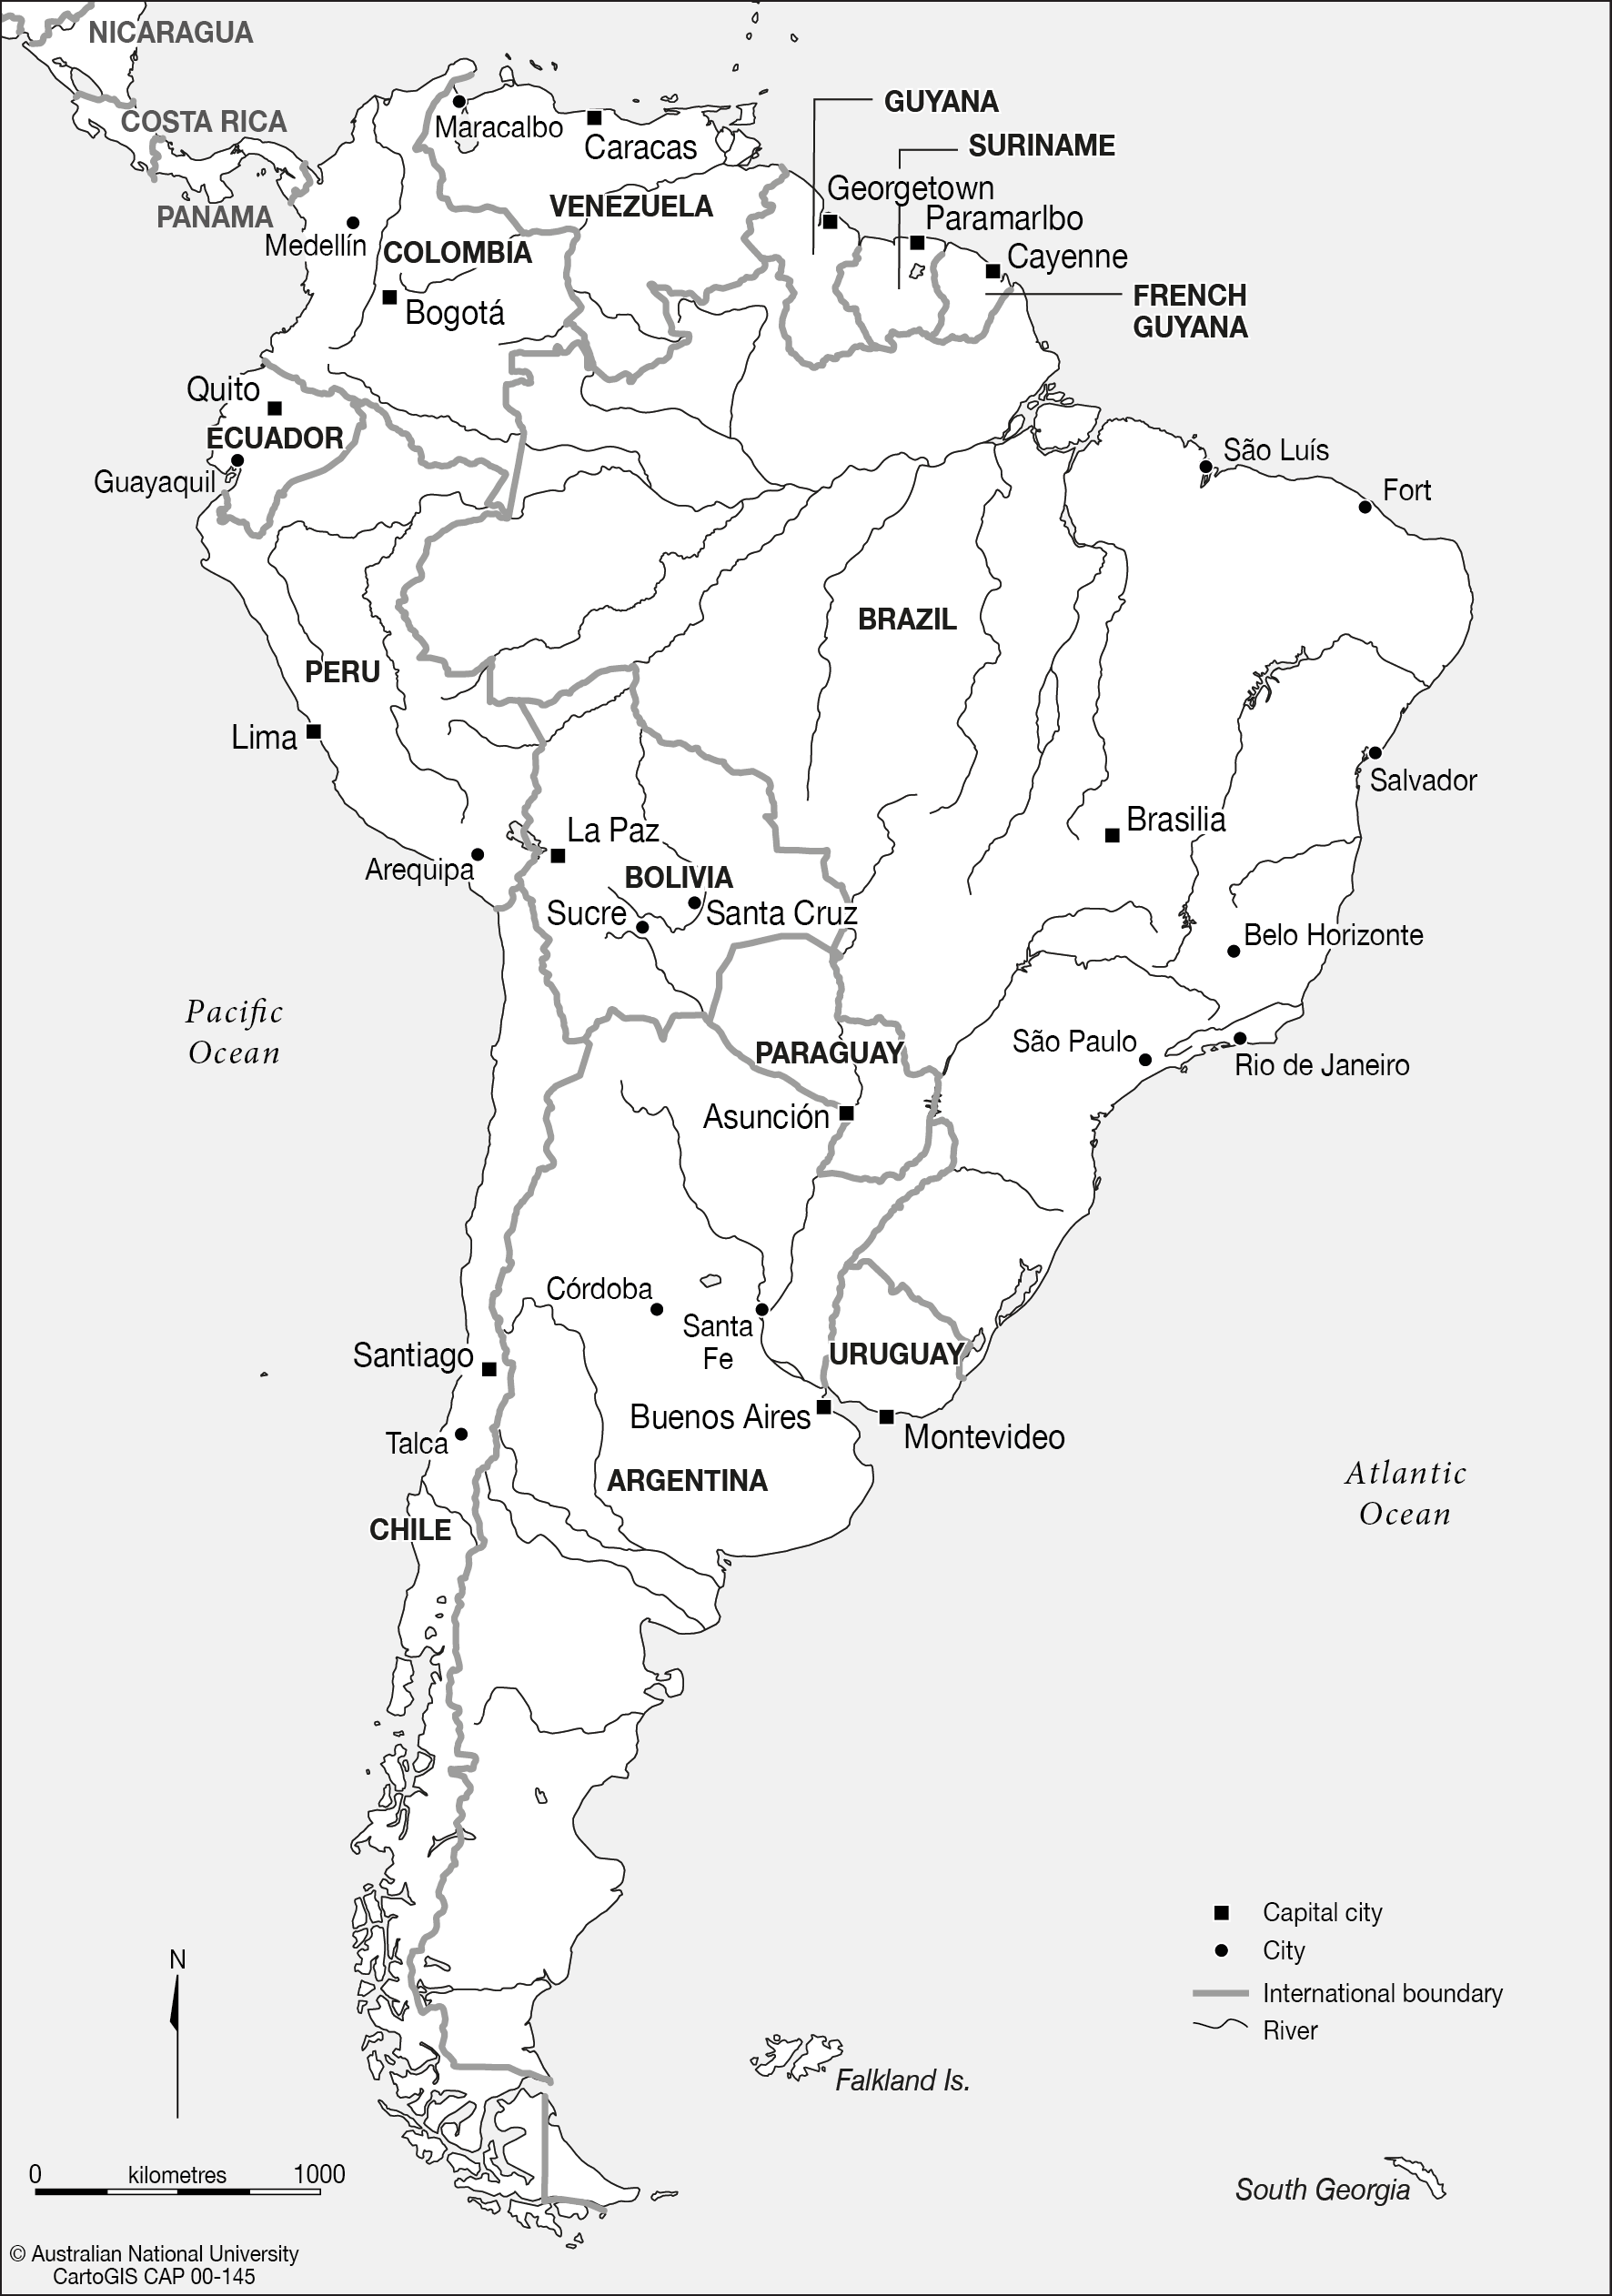 South America CartoGIS Services Maps Online ANU - Uruguay map png